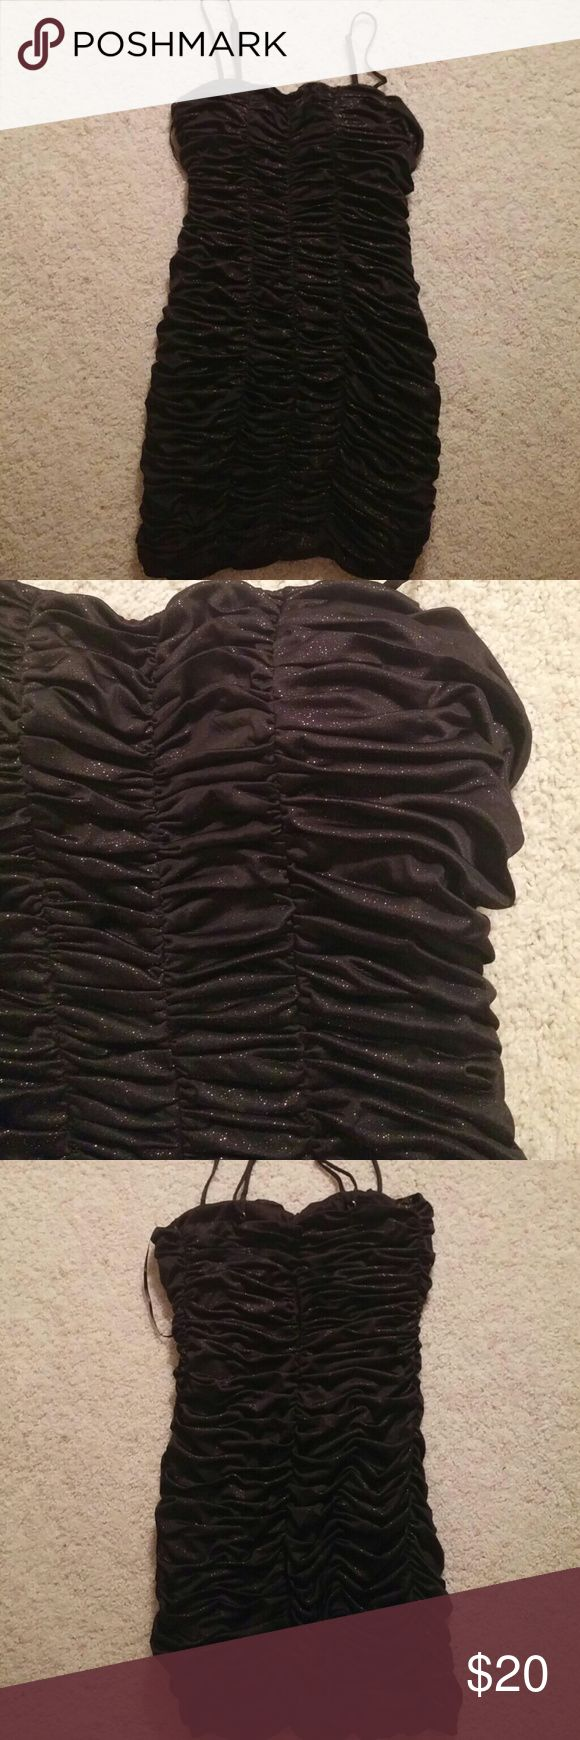 Black dress size M Forever 21 Beautiful Black dress with gold sparkles and back zipper Forever 21 Dresses Mini